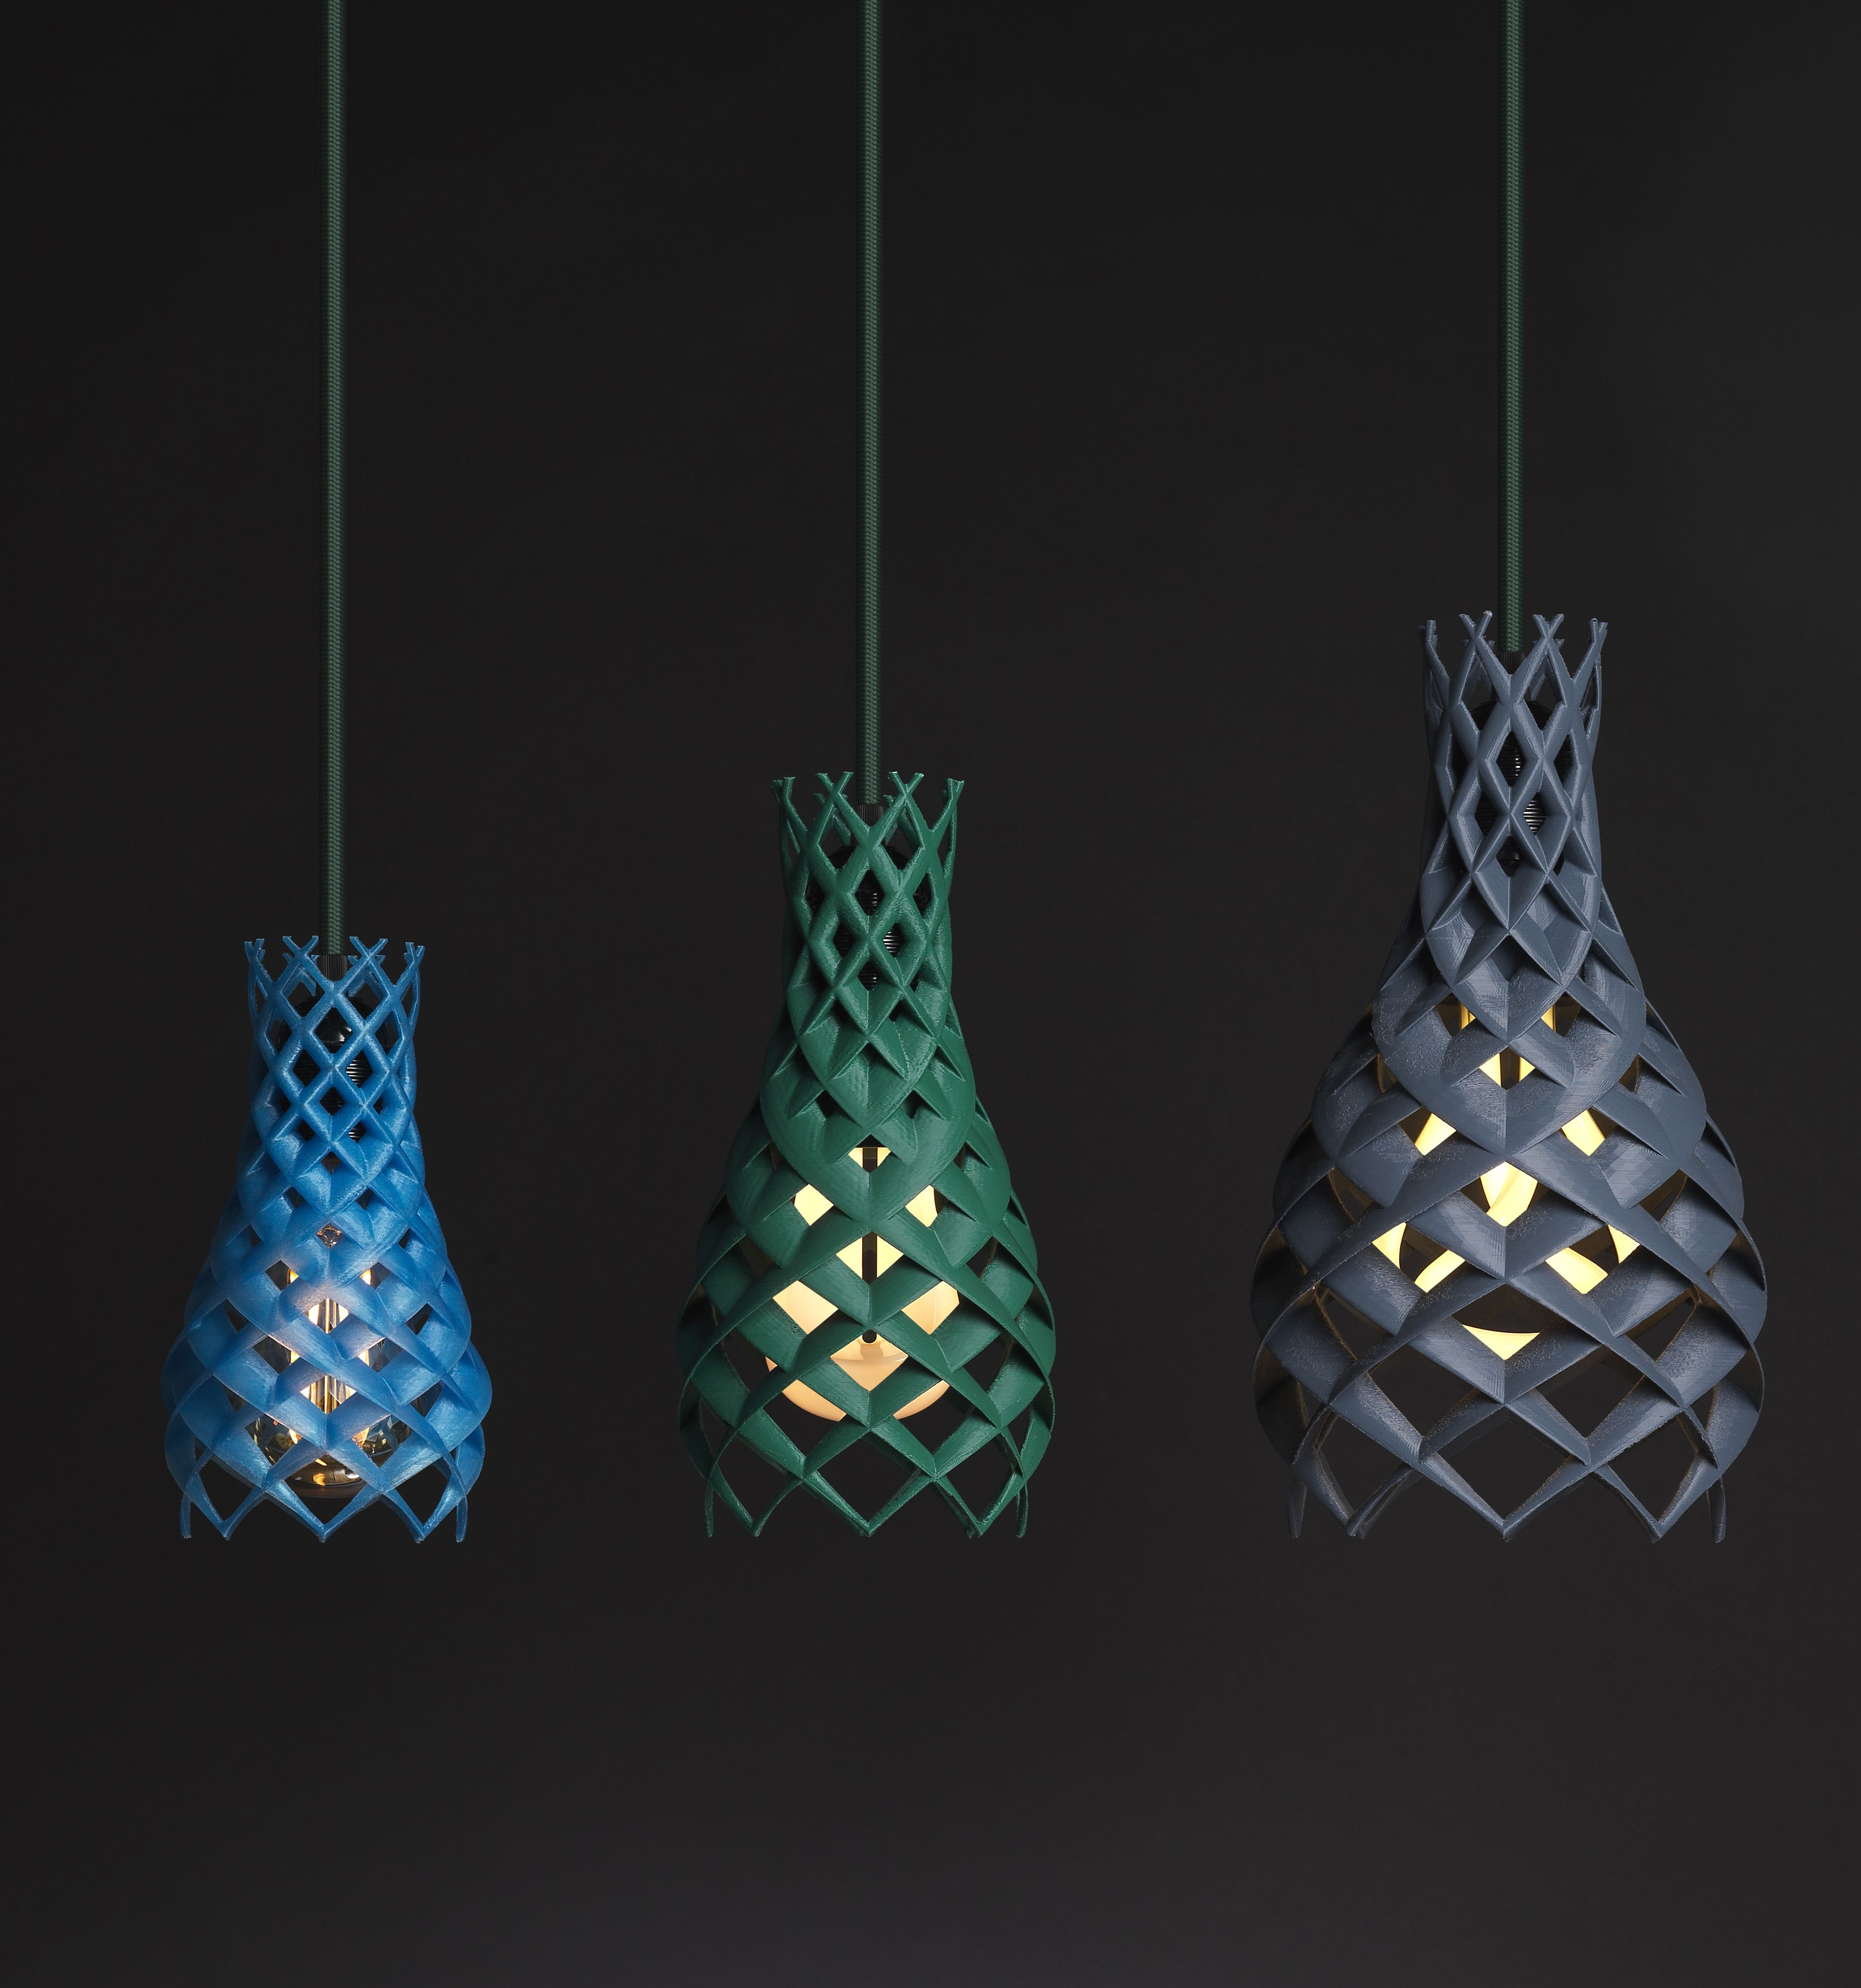 The Brand New 3d Printed Shade Ruche Provides The Unique Touch Of 3d Printing Along With Eye Catching Decor Plumen Light Light Bulb Design Plumen